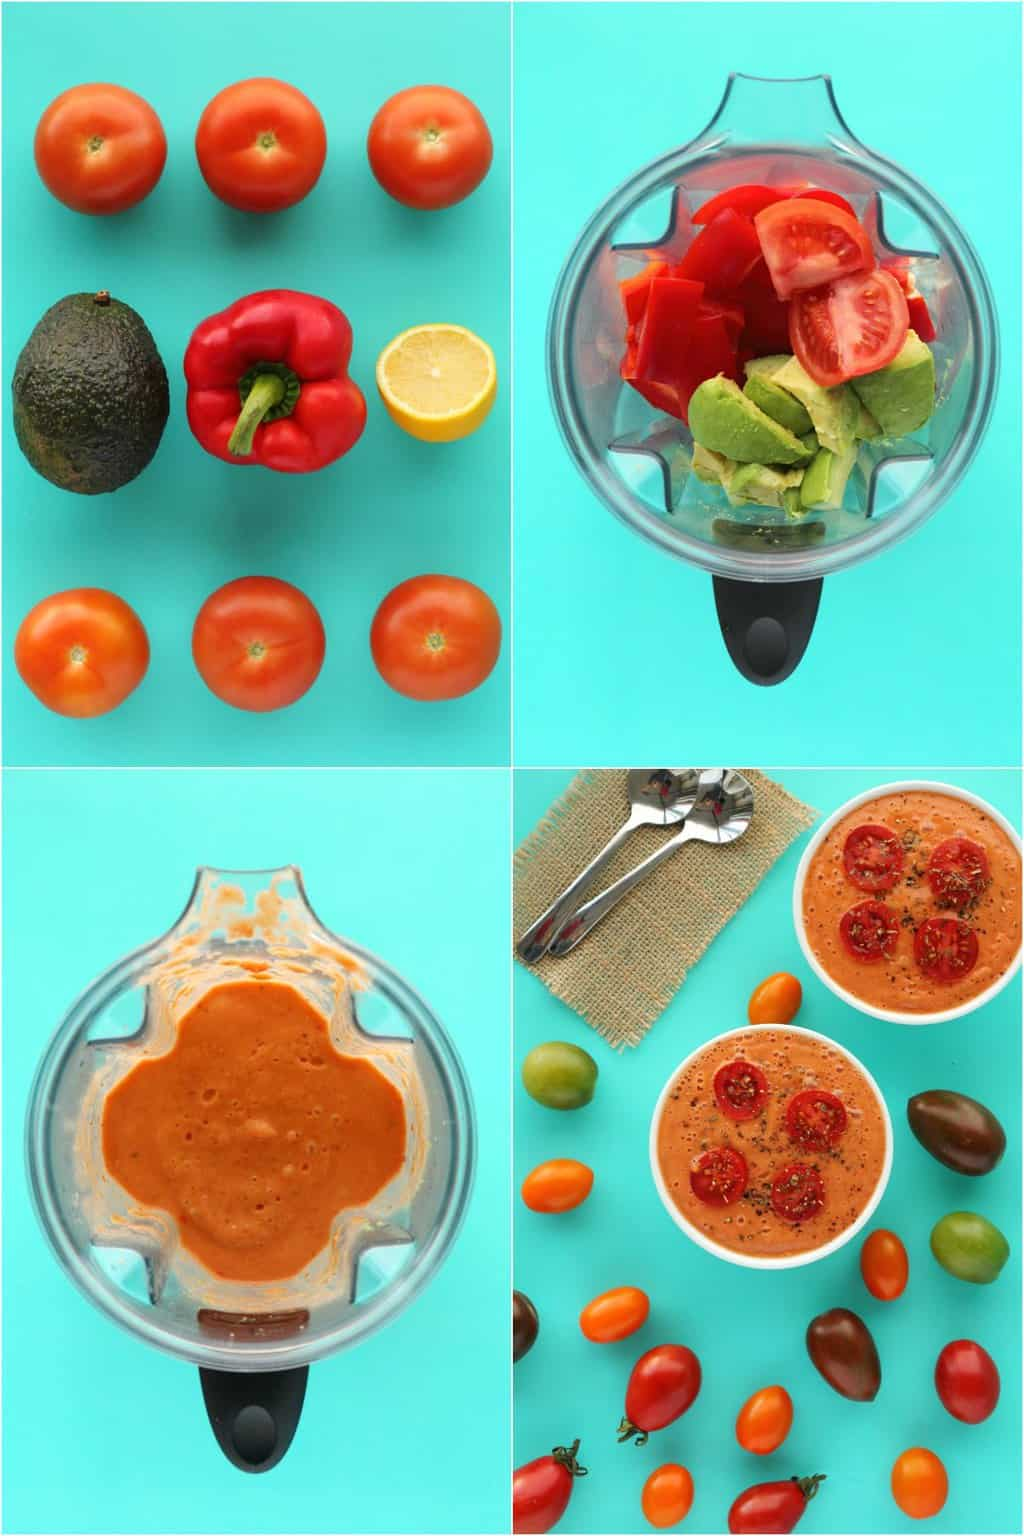 Step by step process photo collage of making a raw tomato soup.